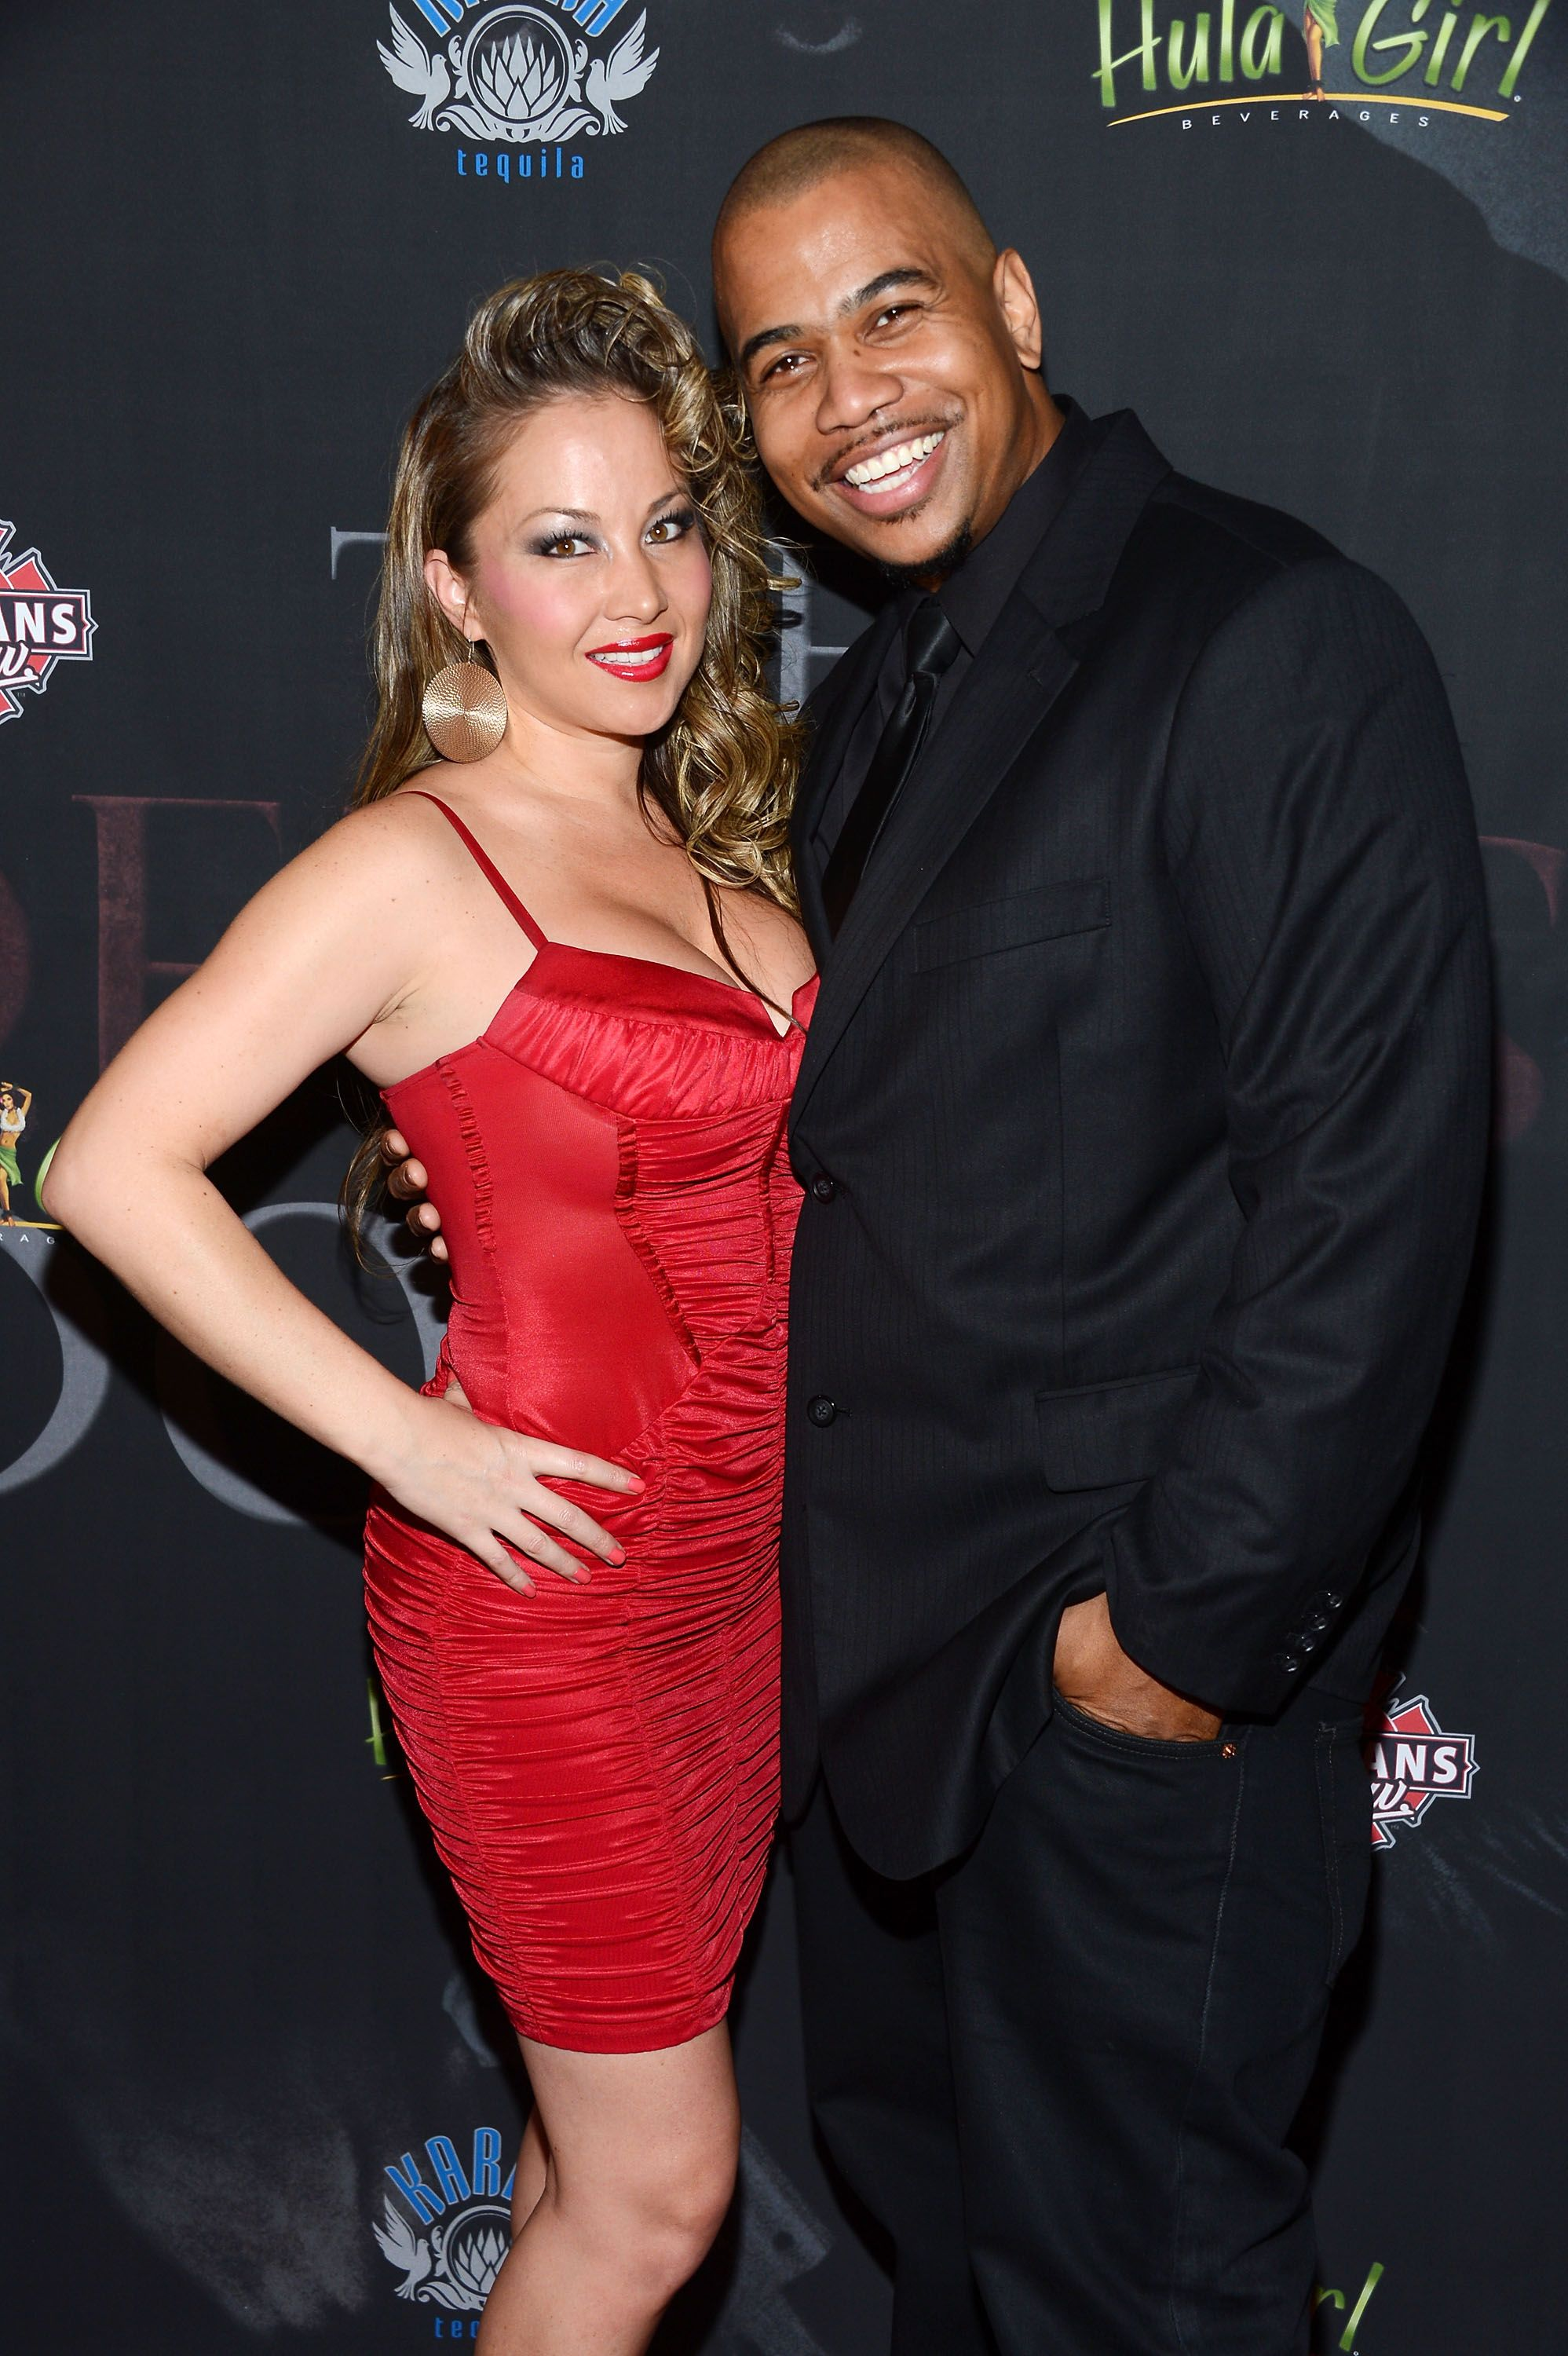 Omar Gooding and wife Mia attend a formal event together | Source: Getty Images/GlobalImagesUkraine